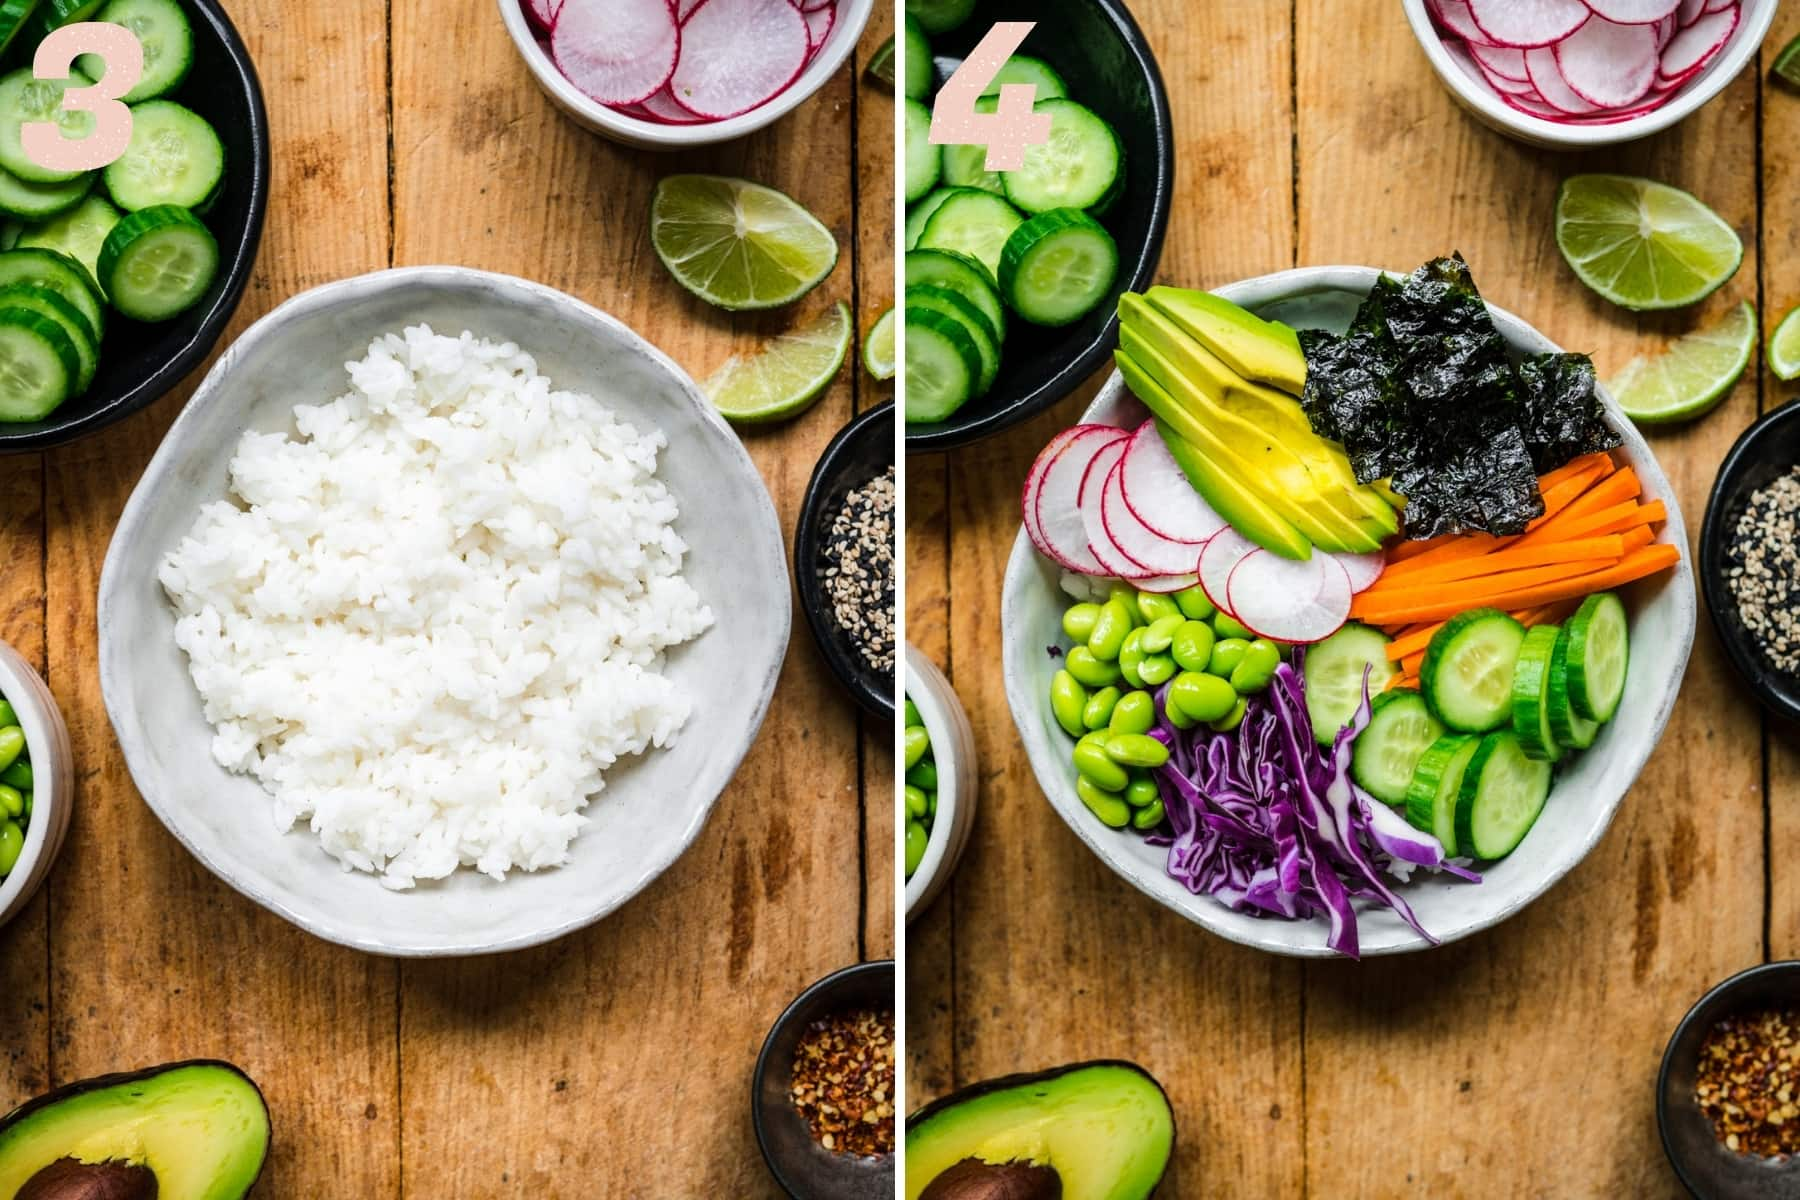 before and after adding vegetables to vegan sushi bowl.